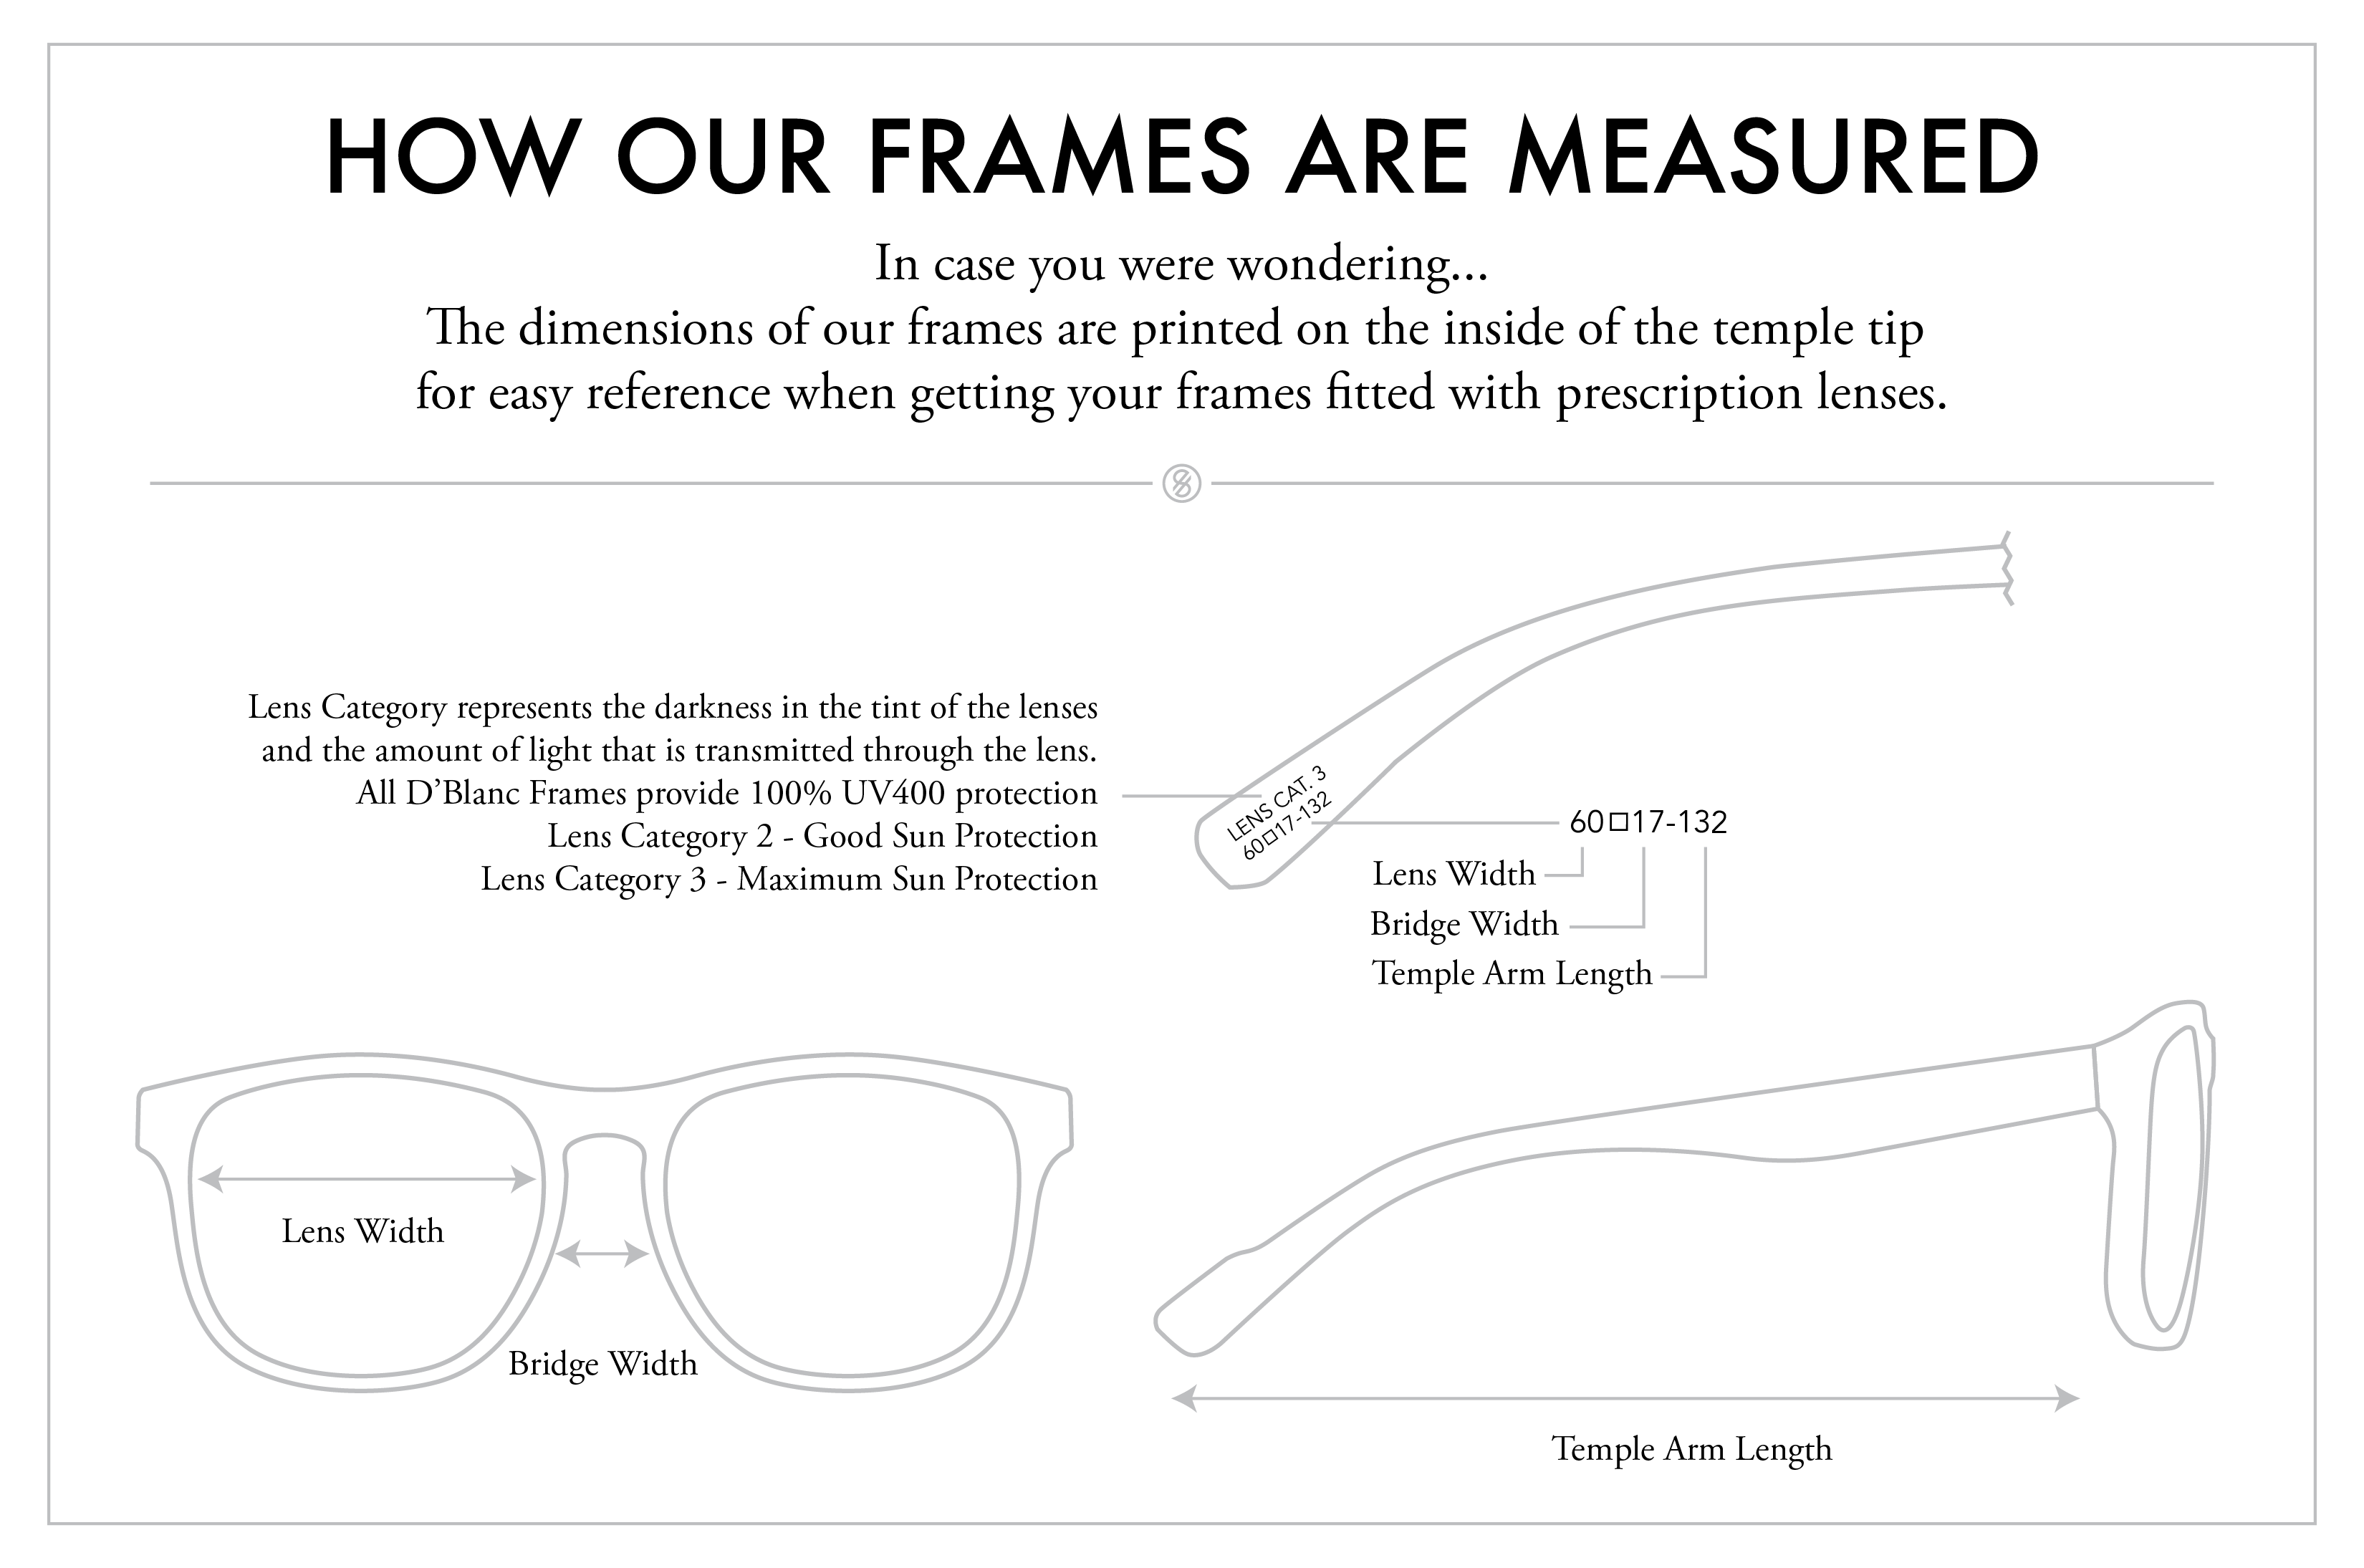 How D'Blanc Frames Are Measured